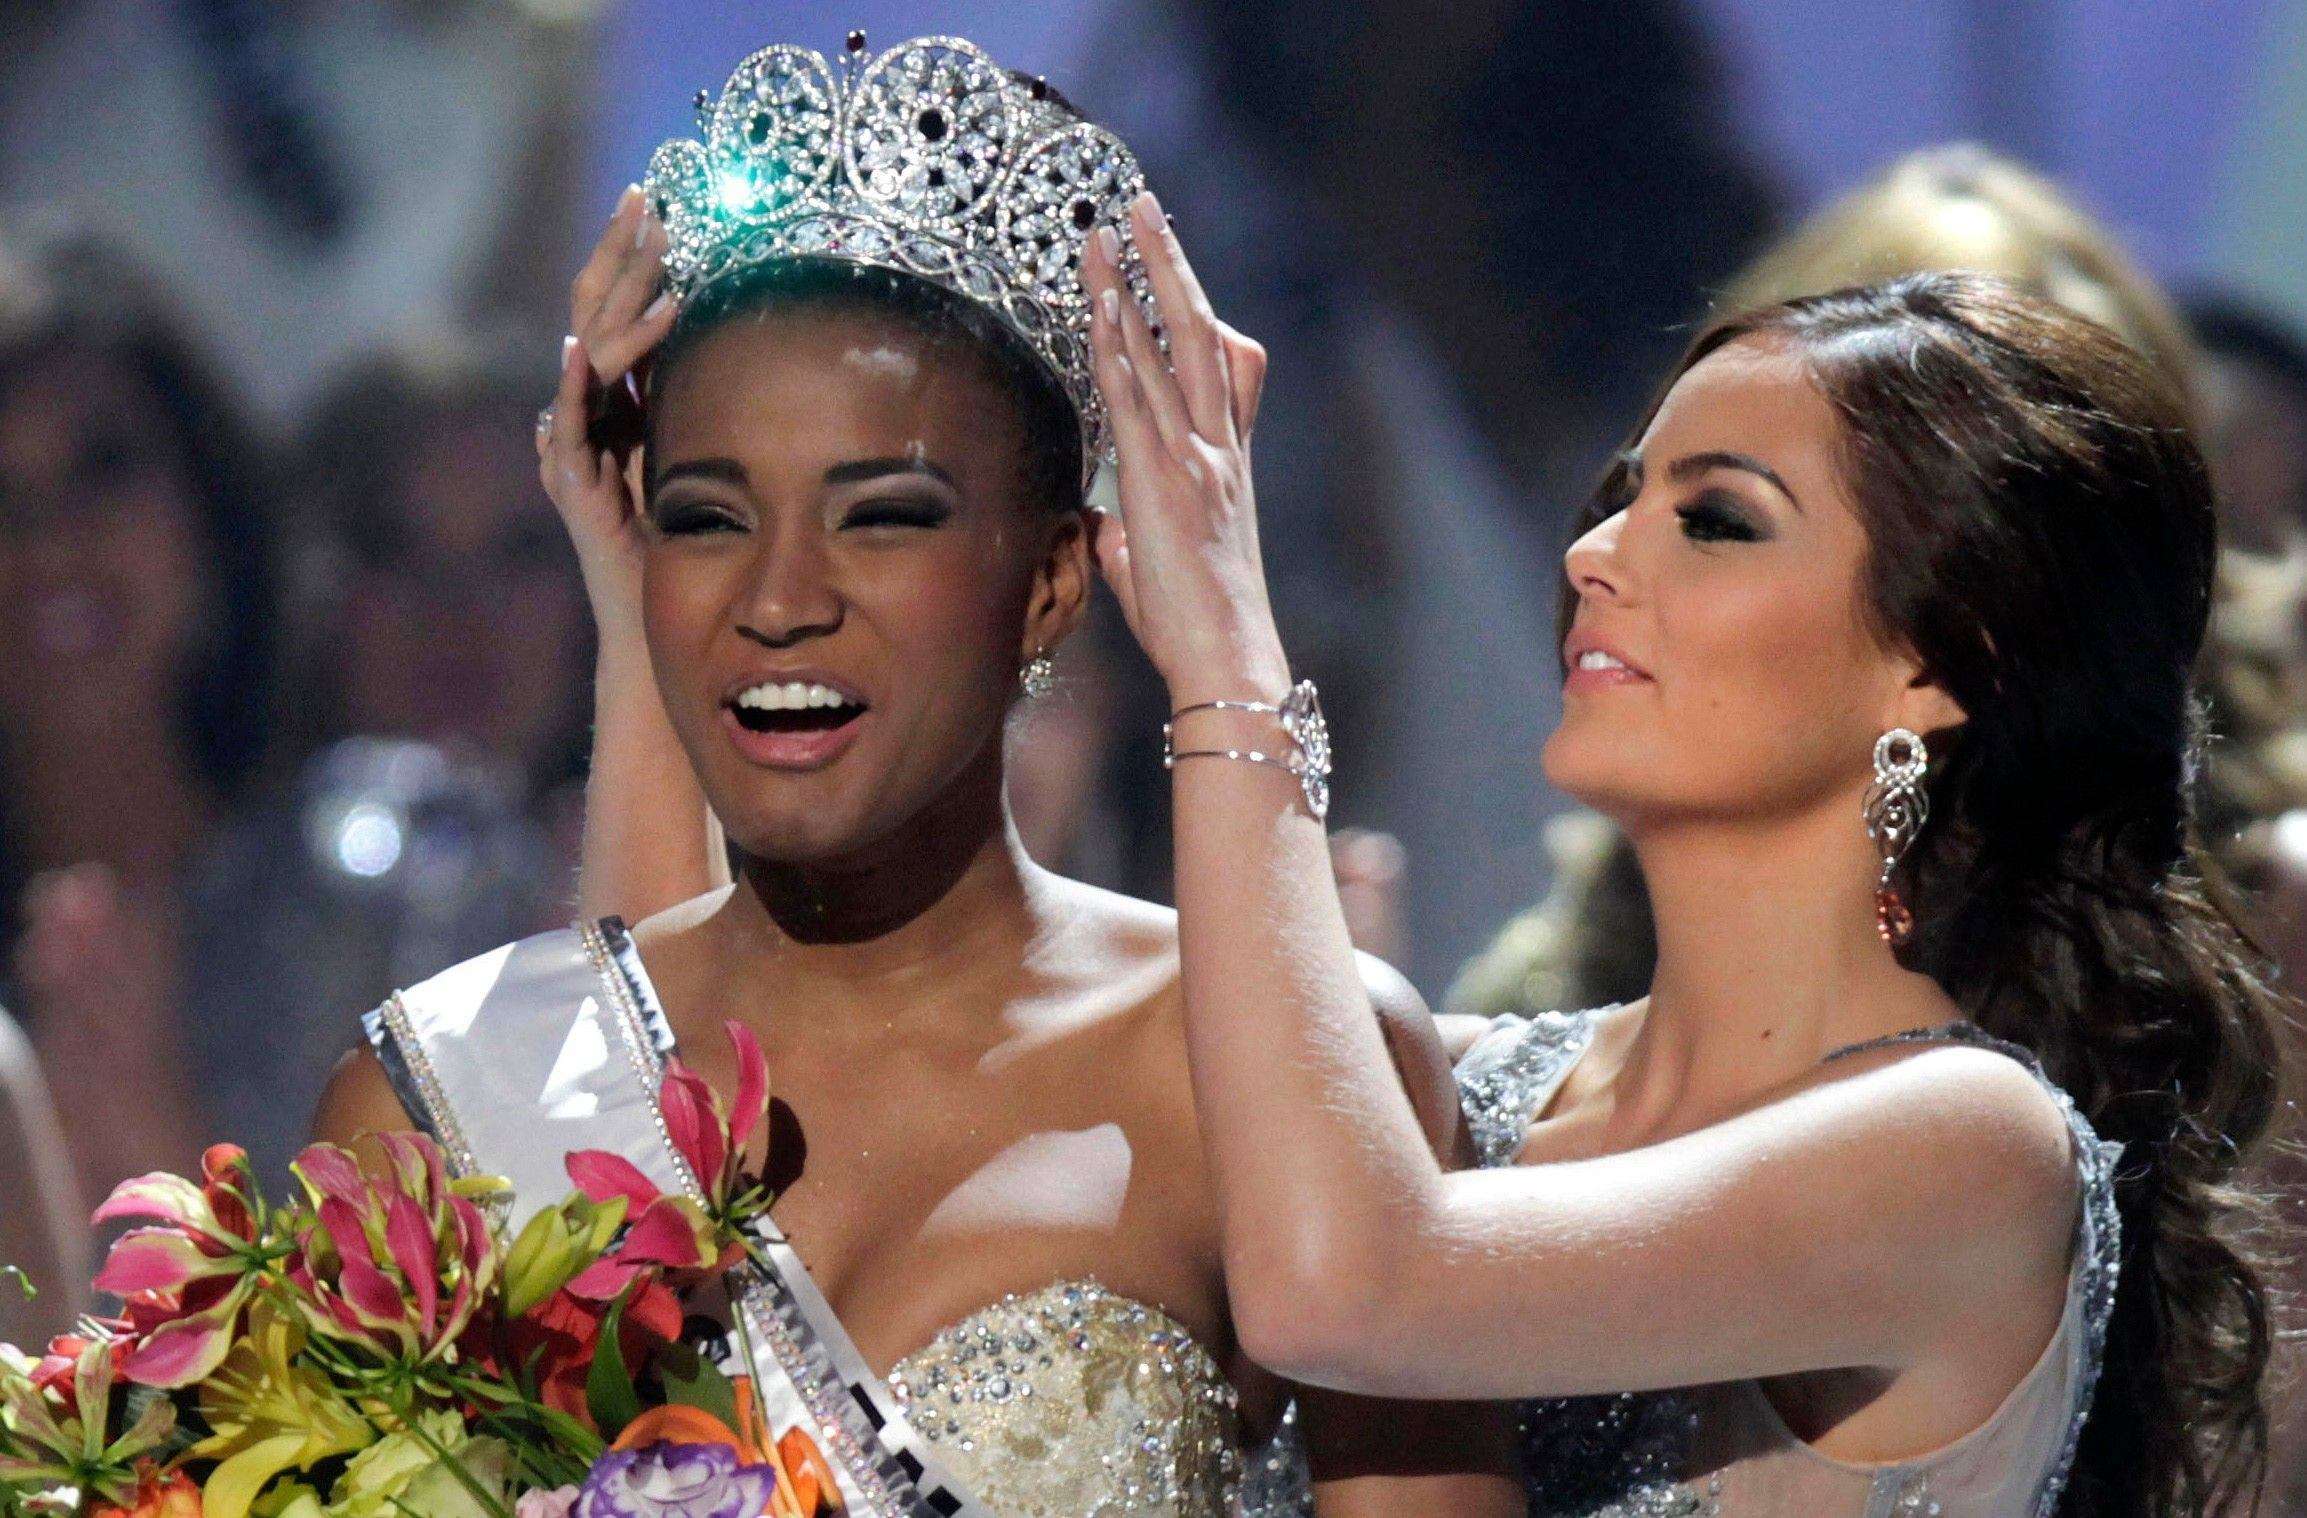 Miss Angola Leila Lopes is crowned Miss Universe 2011 by Miss Universe 2010 Ximena Navarrete, of Mexico, in Sao Paulo, Brazil, Monday.